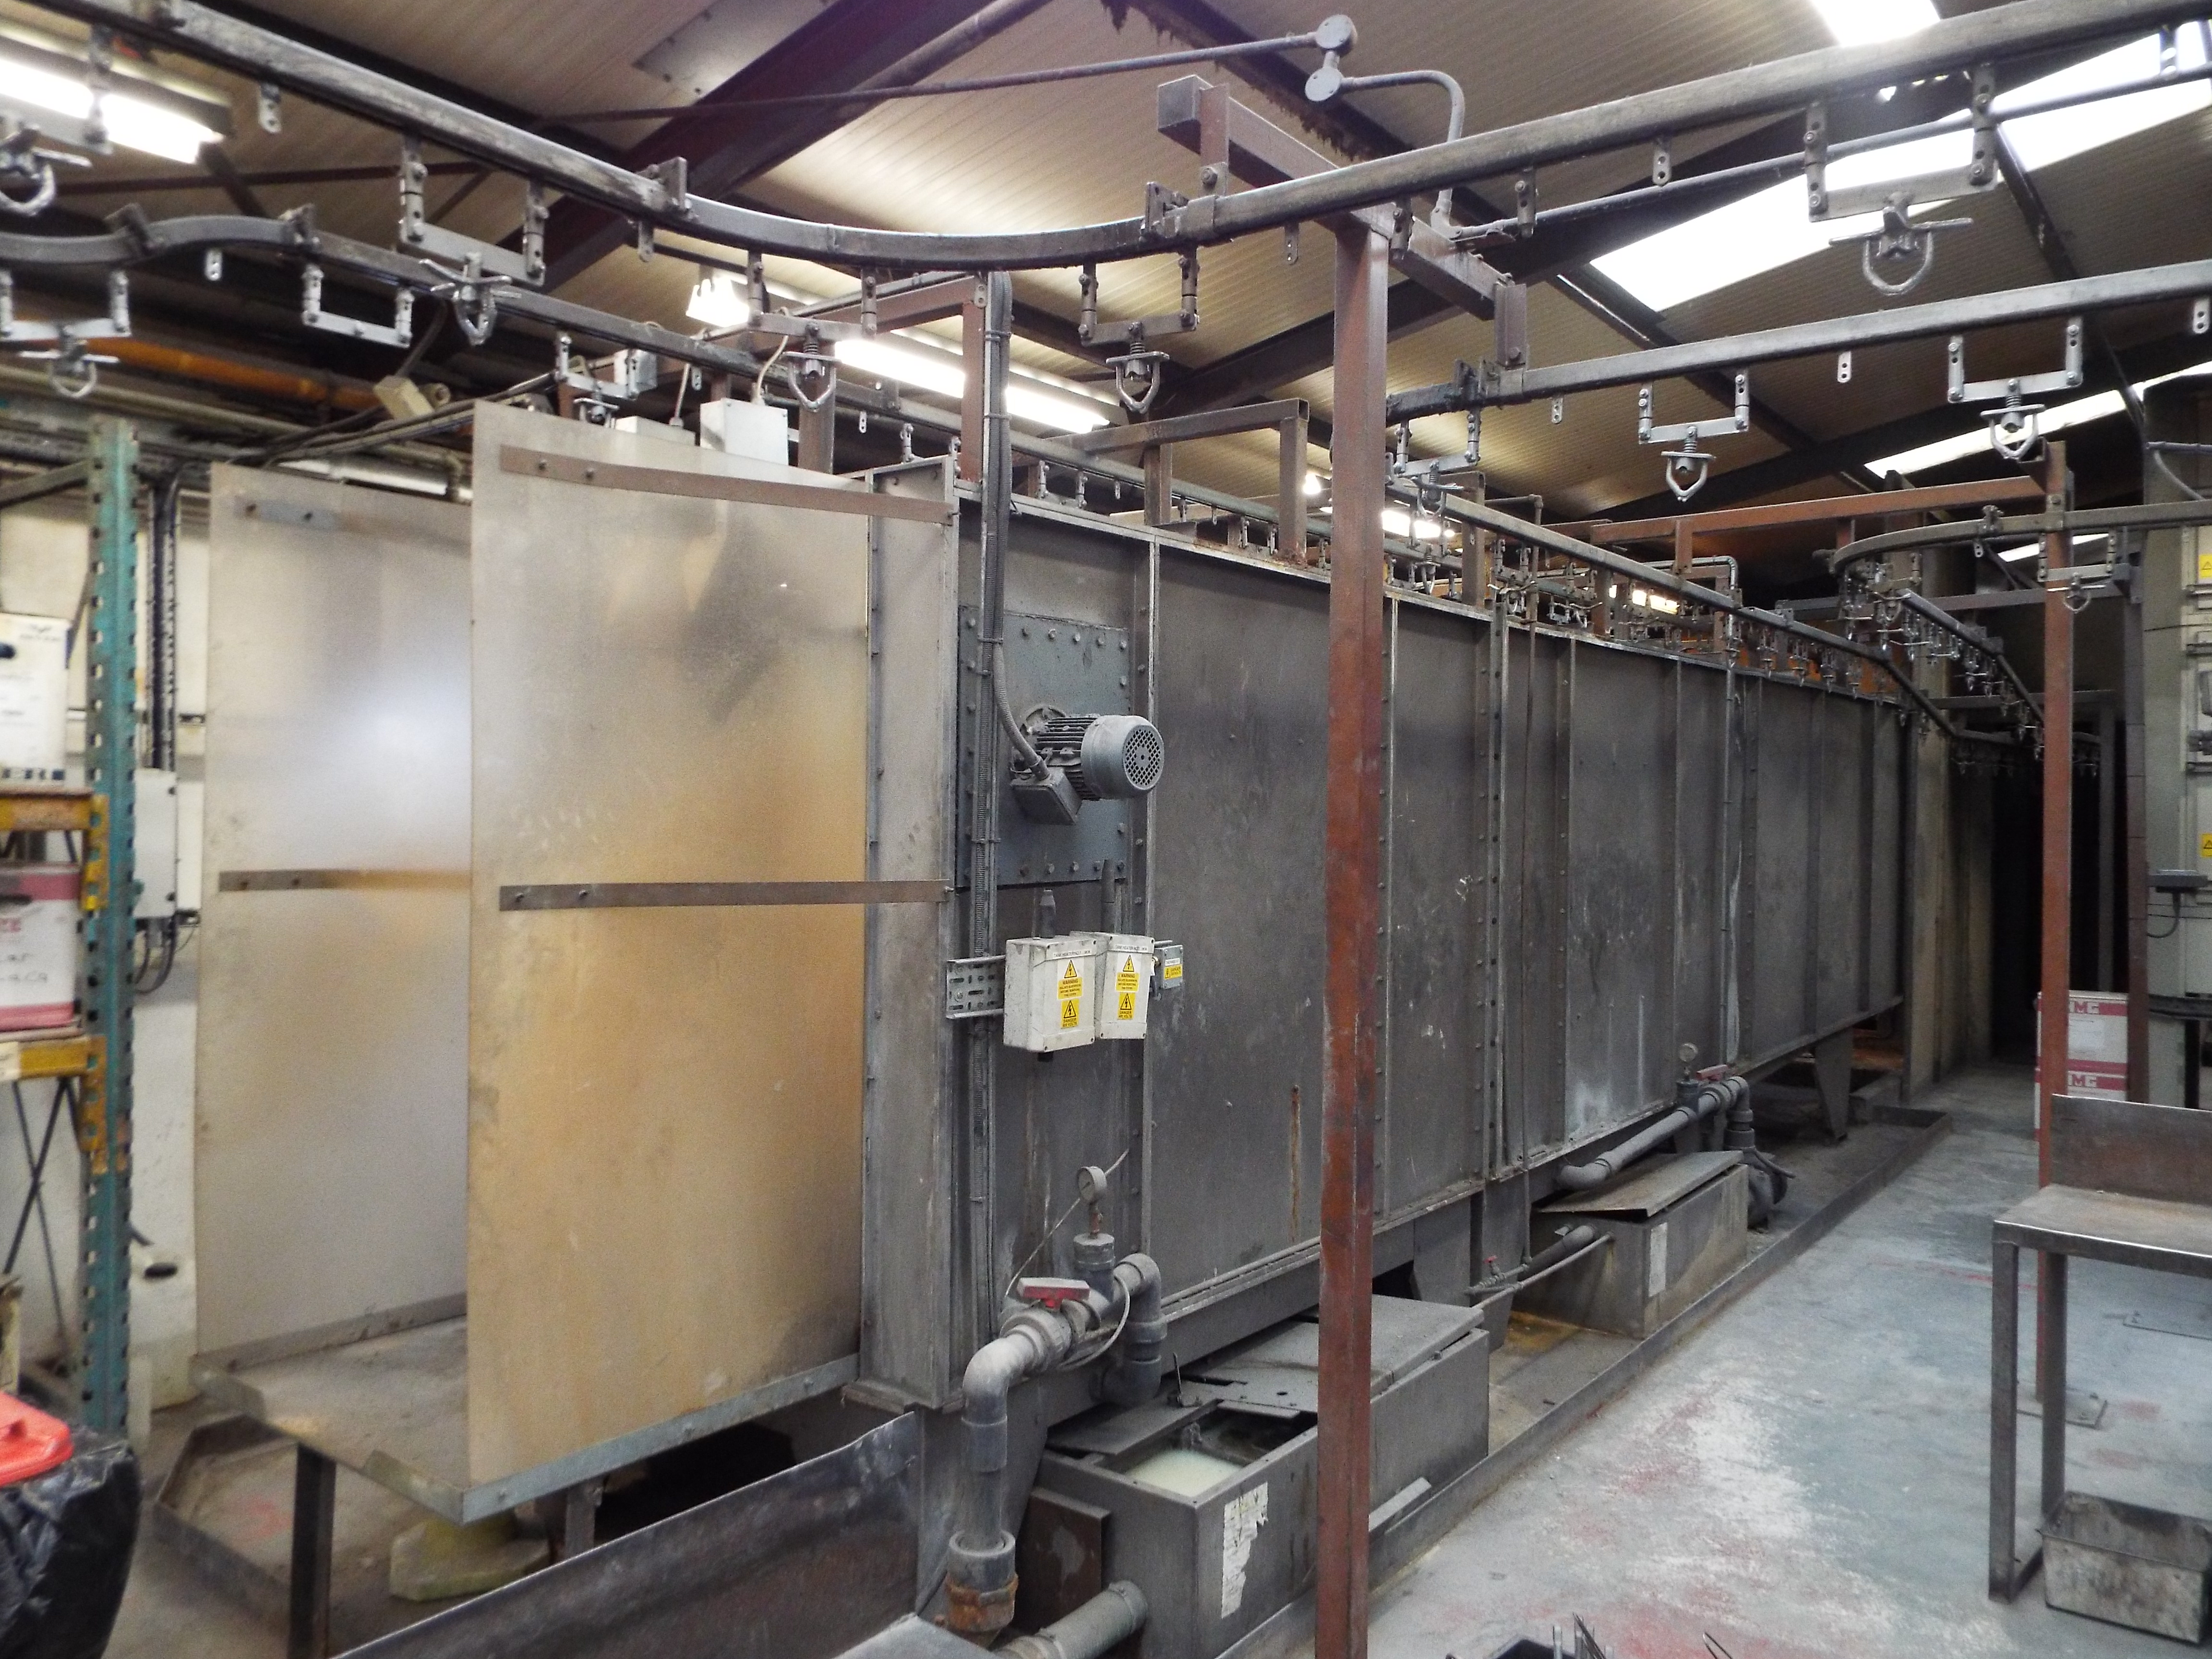 Los 1 - Modern, Compact Nordsen Versa Powder Coating Facility with On-Line Pre-treatment.